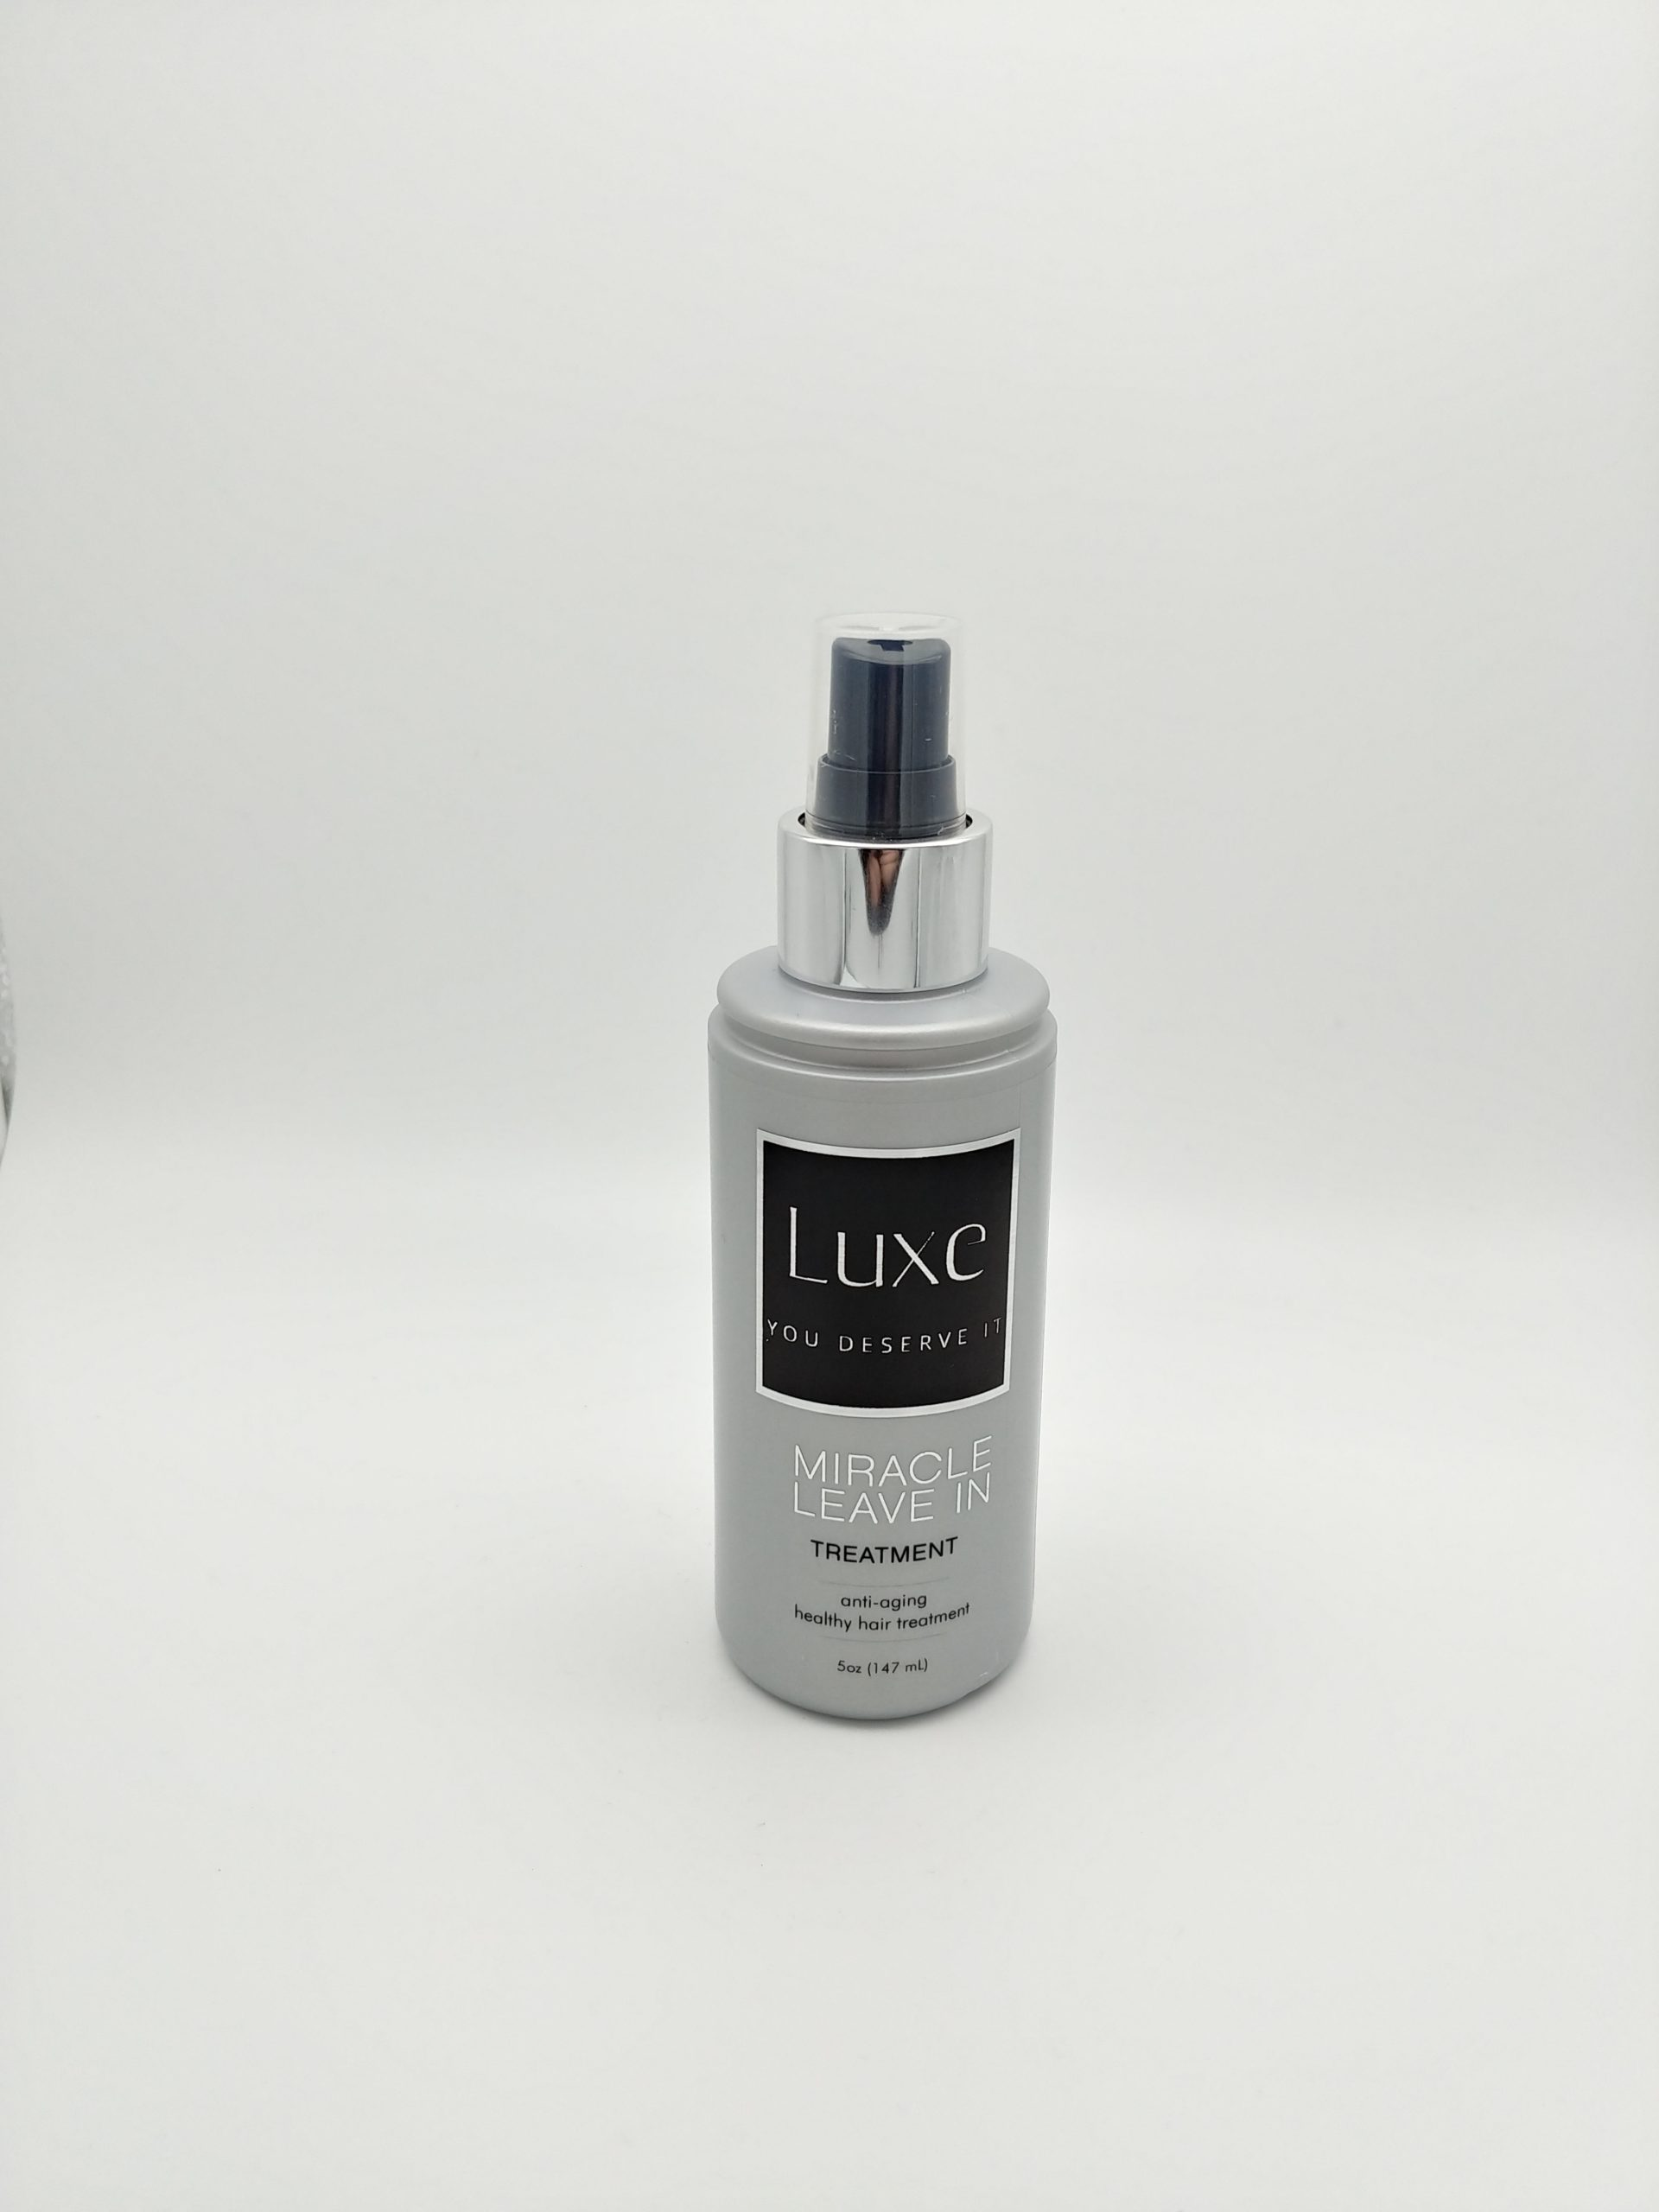 Luxe Miracle Leave-In Treatment